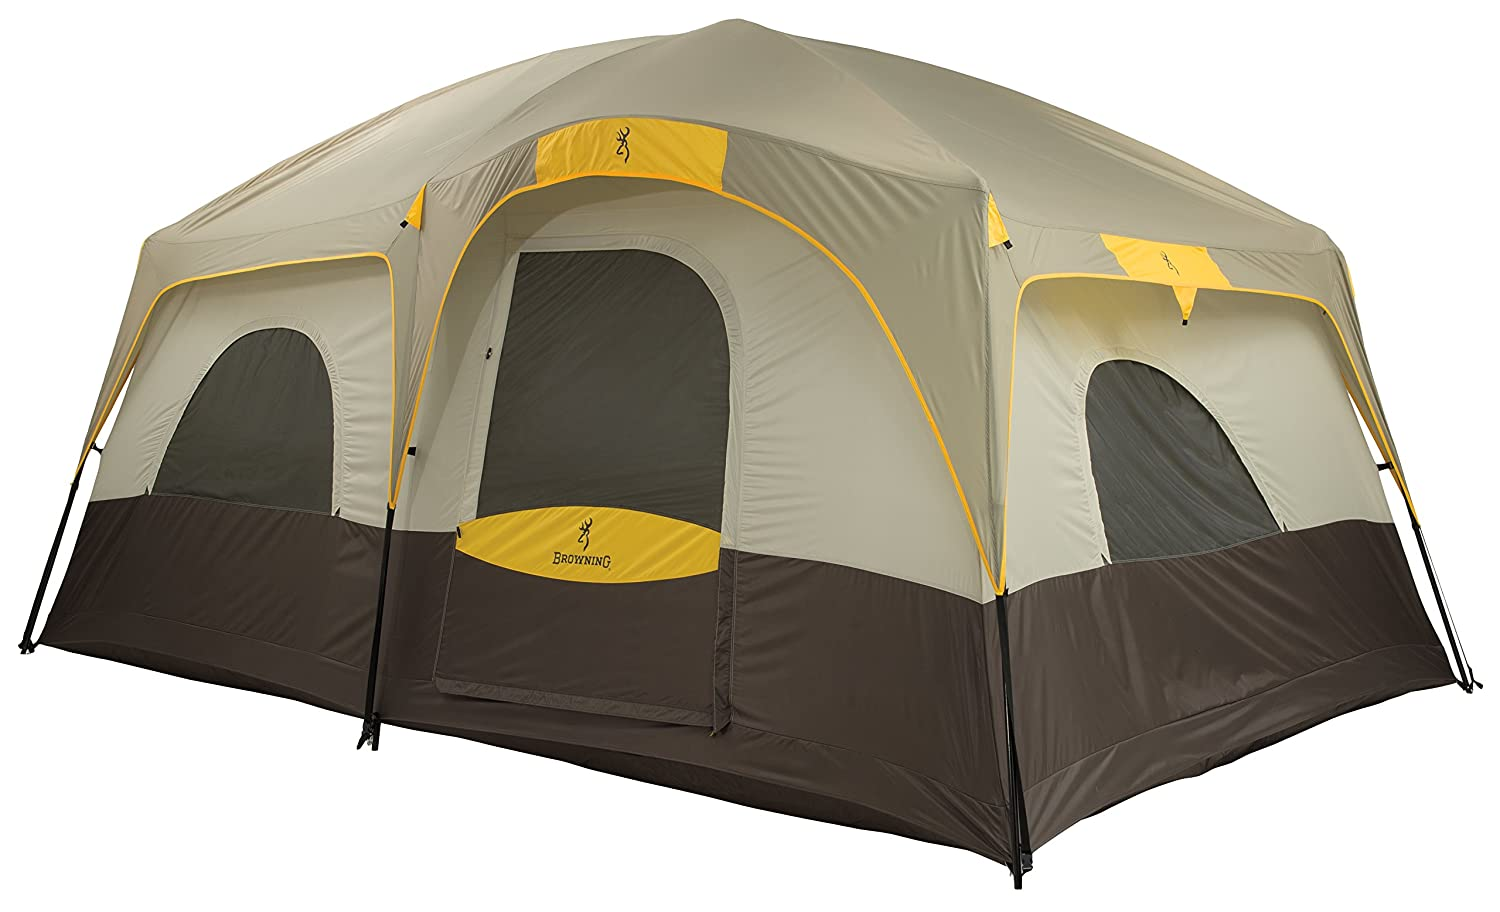 Amazon.com  Browning C&ing Big Horn Family/Hunting Tent  Wall Tent  Sports u0026 Outdoors  sc 1 st  Amazon.com & Amazon.com : Browning Camping Big Horn Family/Hunting Tent : Wall ...